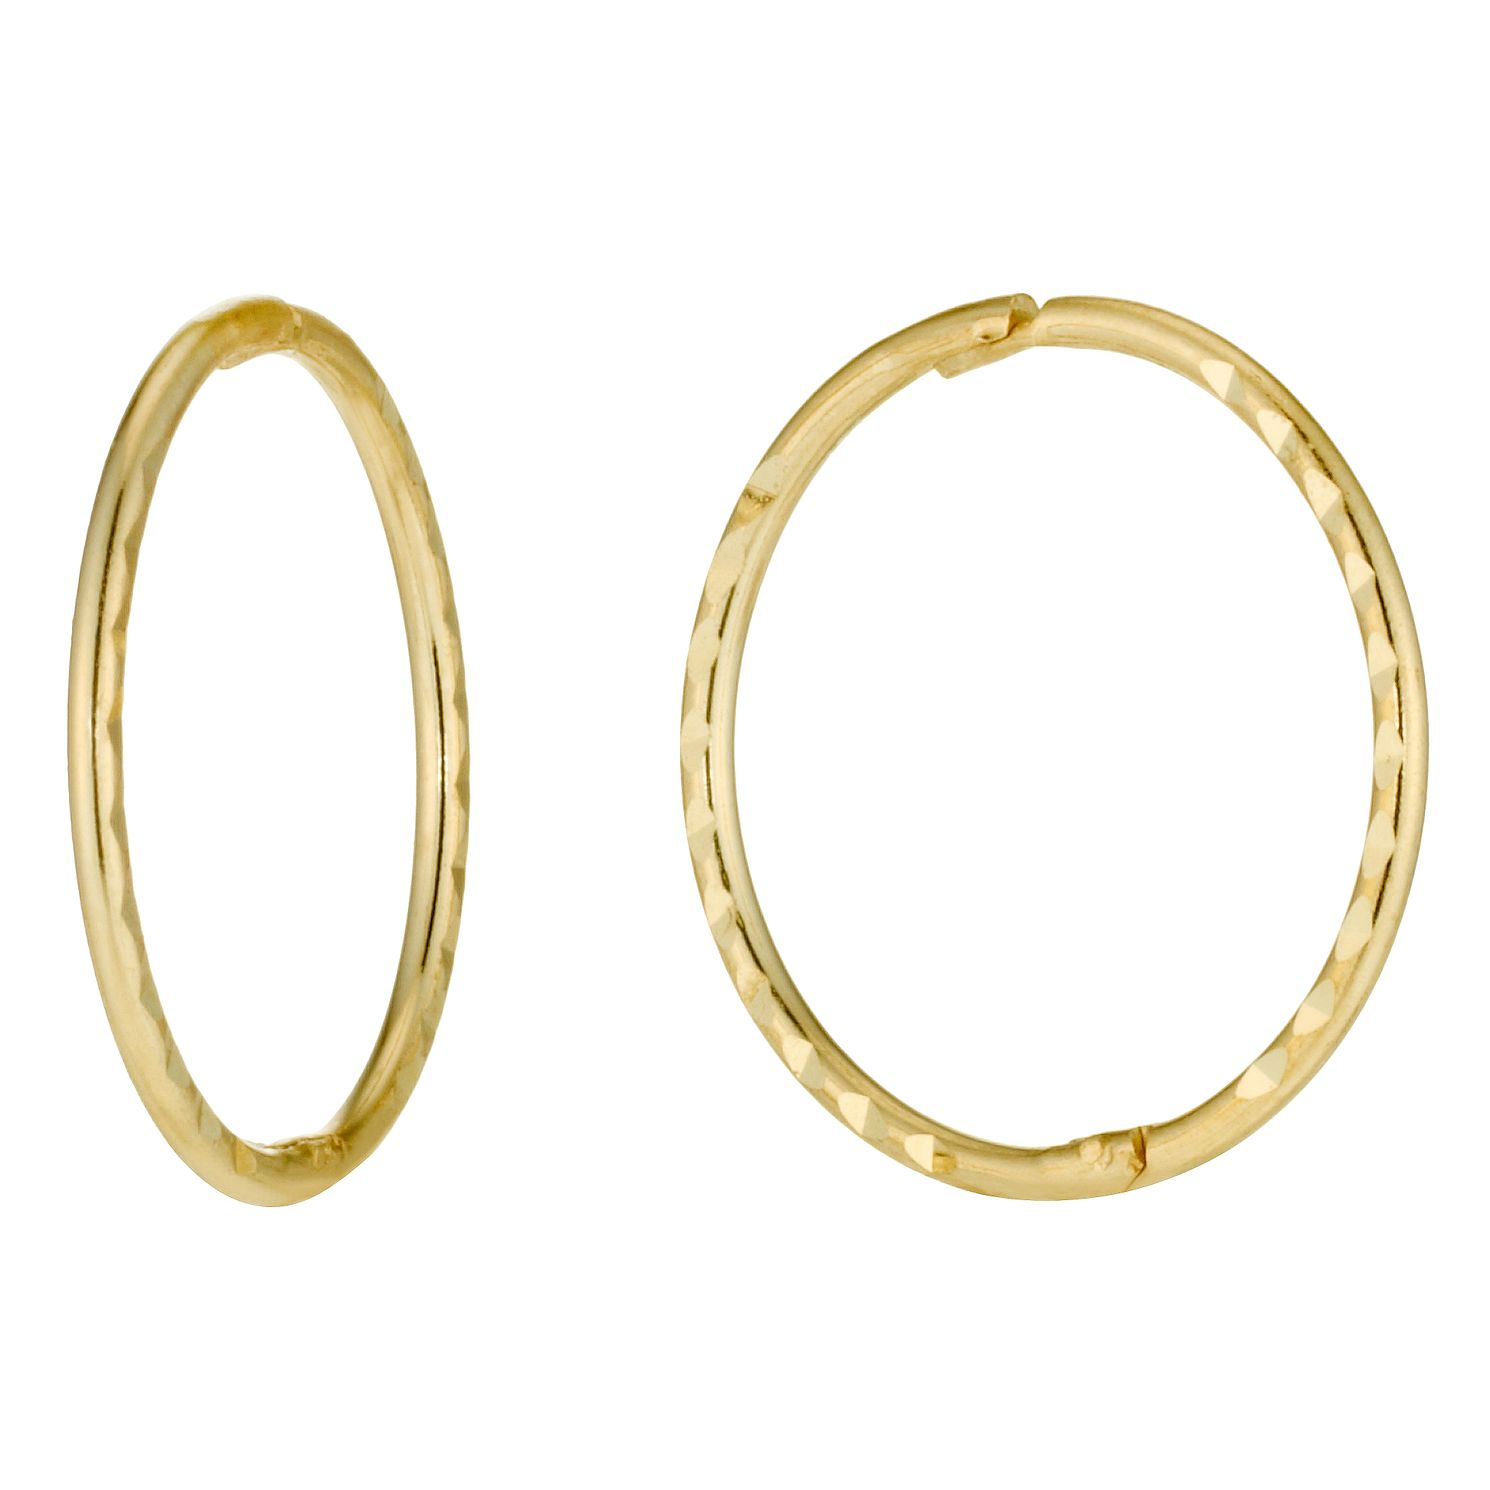 9ct Gold Small Hoop Earrings - Product number 2256126